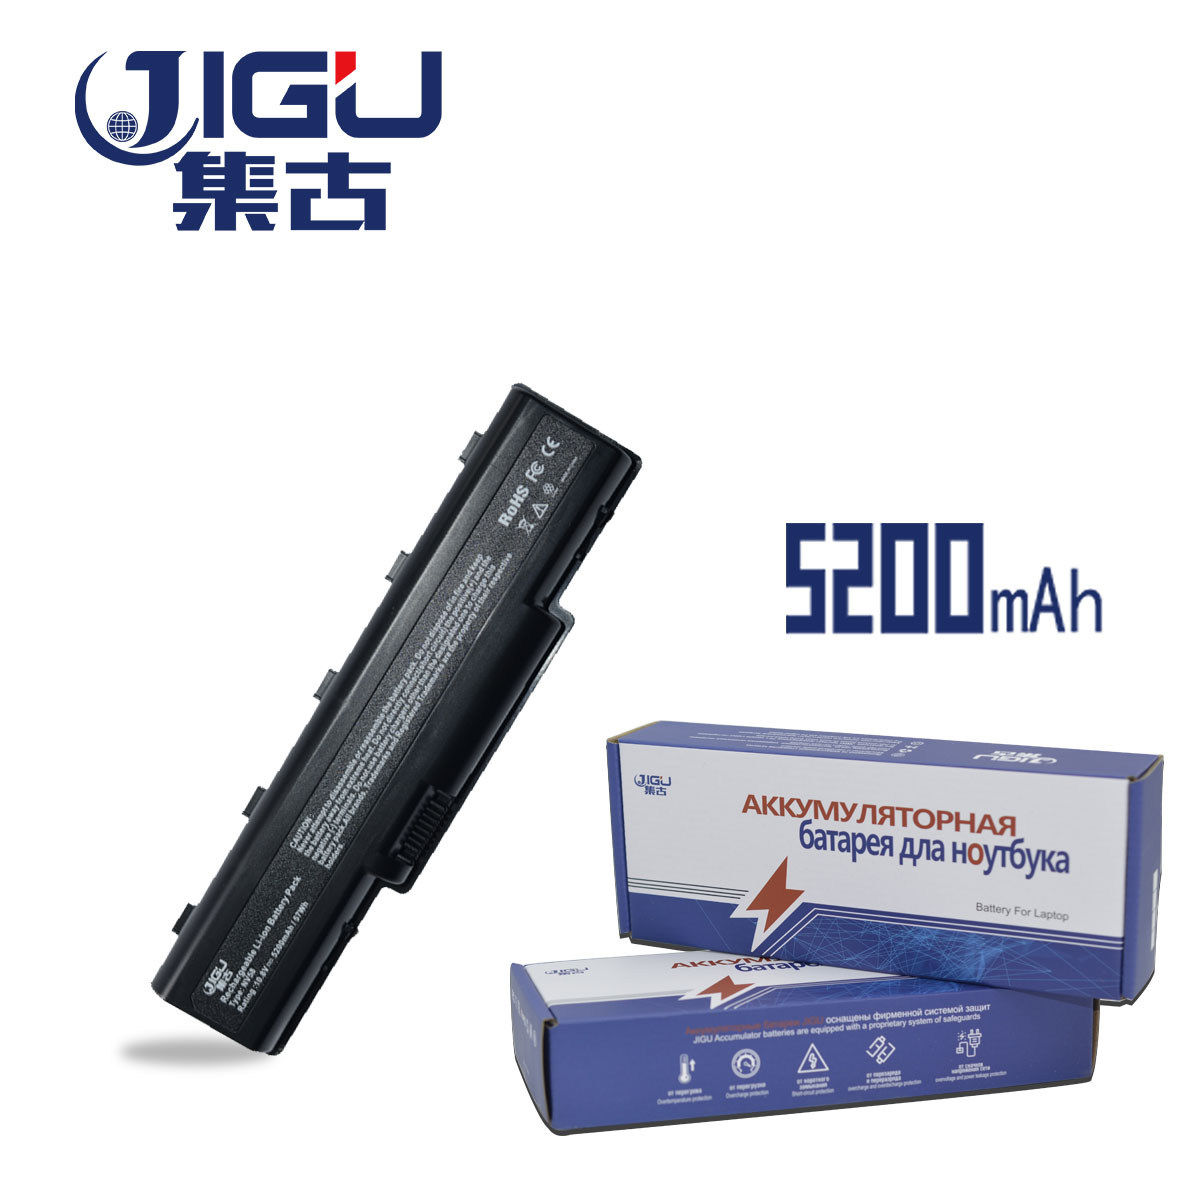 JIGU Laptop Battery AS09A56 AS09A70 As09a41 FOR Acer EMachines E525 E625 E627 E630 E725 G430 G625 G627 G630 G630G G725 As09a31 cltgxdd us 050 usb jack for lenovo g550 g550a g550g g550m g550 for acer aspire 5743z emachines e520 e525 e725